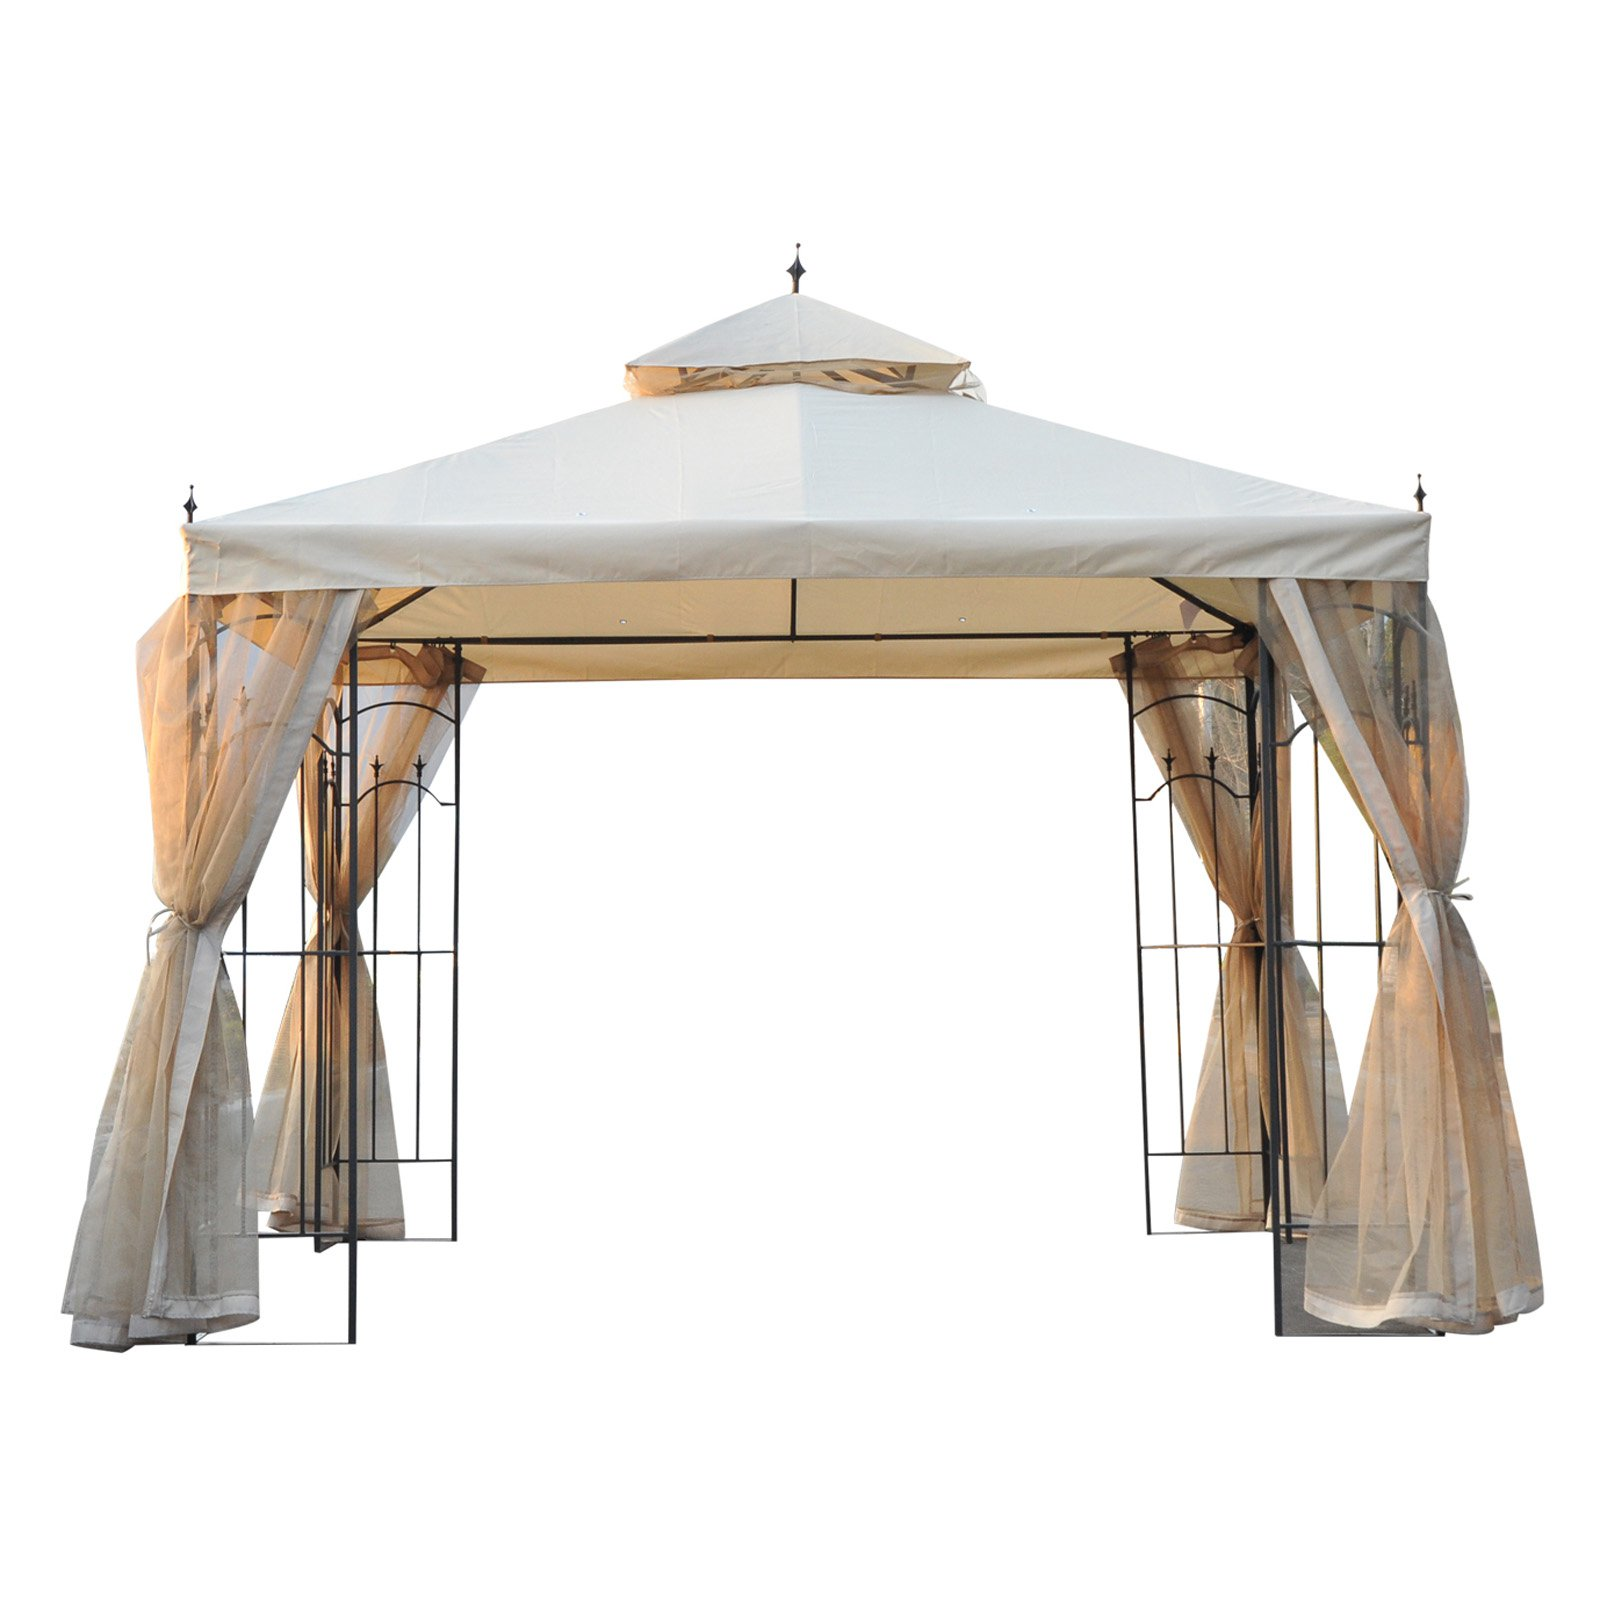 Outsunny 10 x 10 ft. Steel Outdoor Garden Gazebo with Mesh Curtains